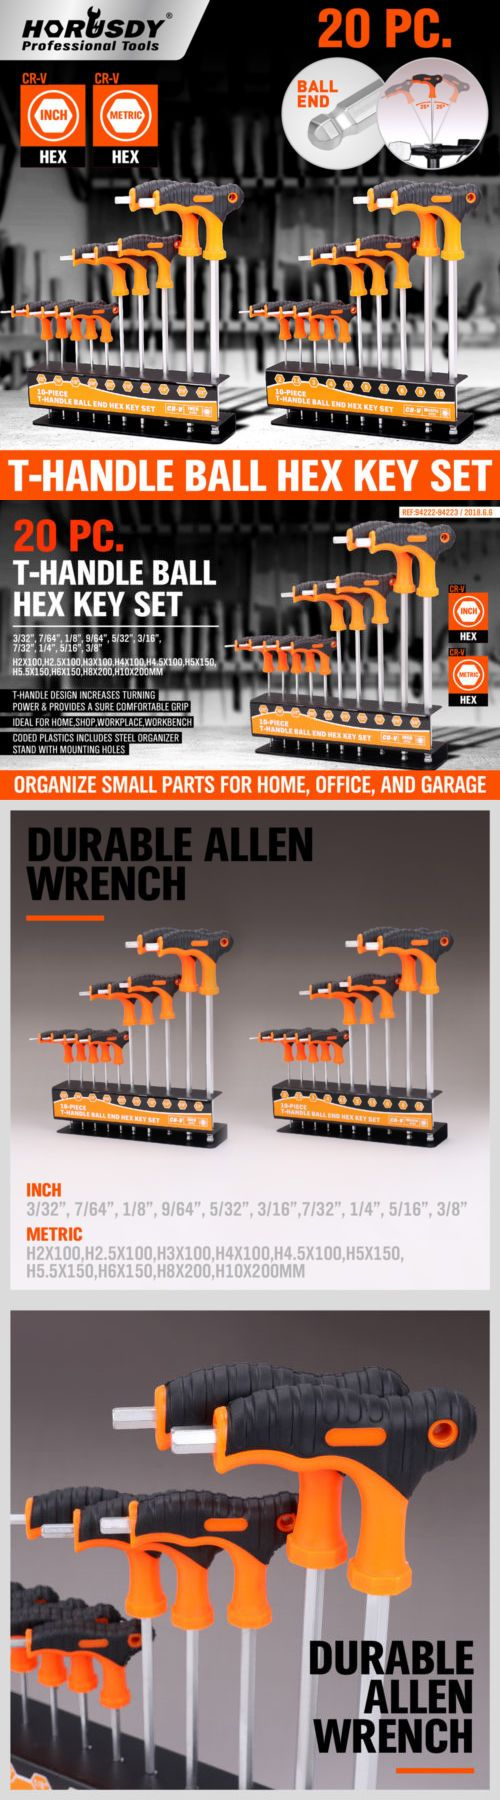 Hex Keys And Wrenches 42258 20 Pc Sae And Metric T Handle Allen Wrench Ball End Hex Key Set W Storage Stand Buy It Now Only Hex Key Storage Stand Wrench